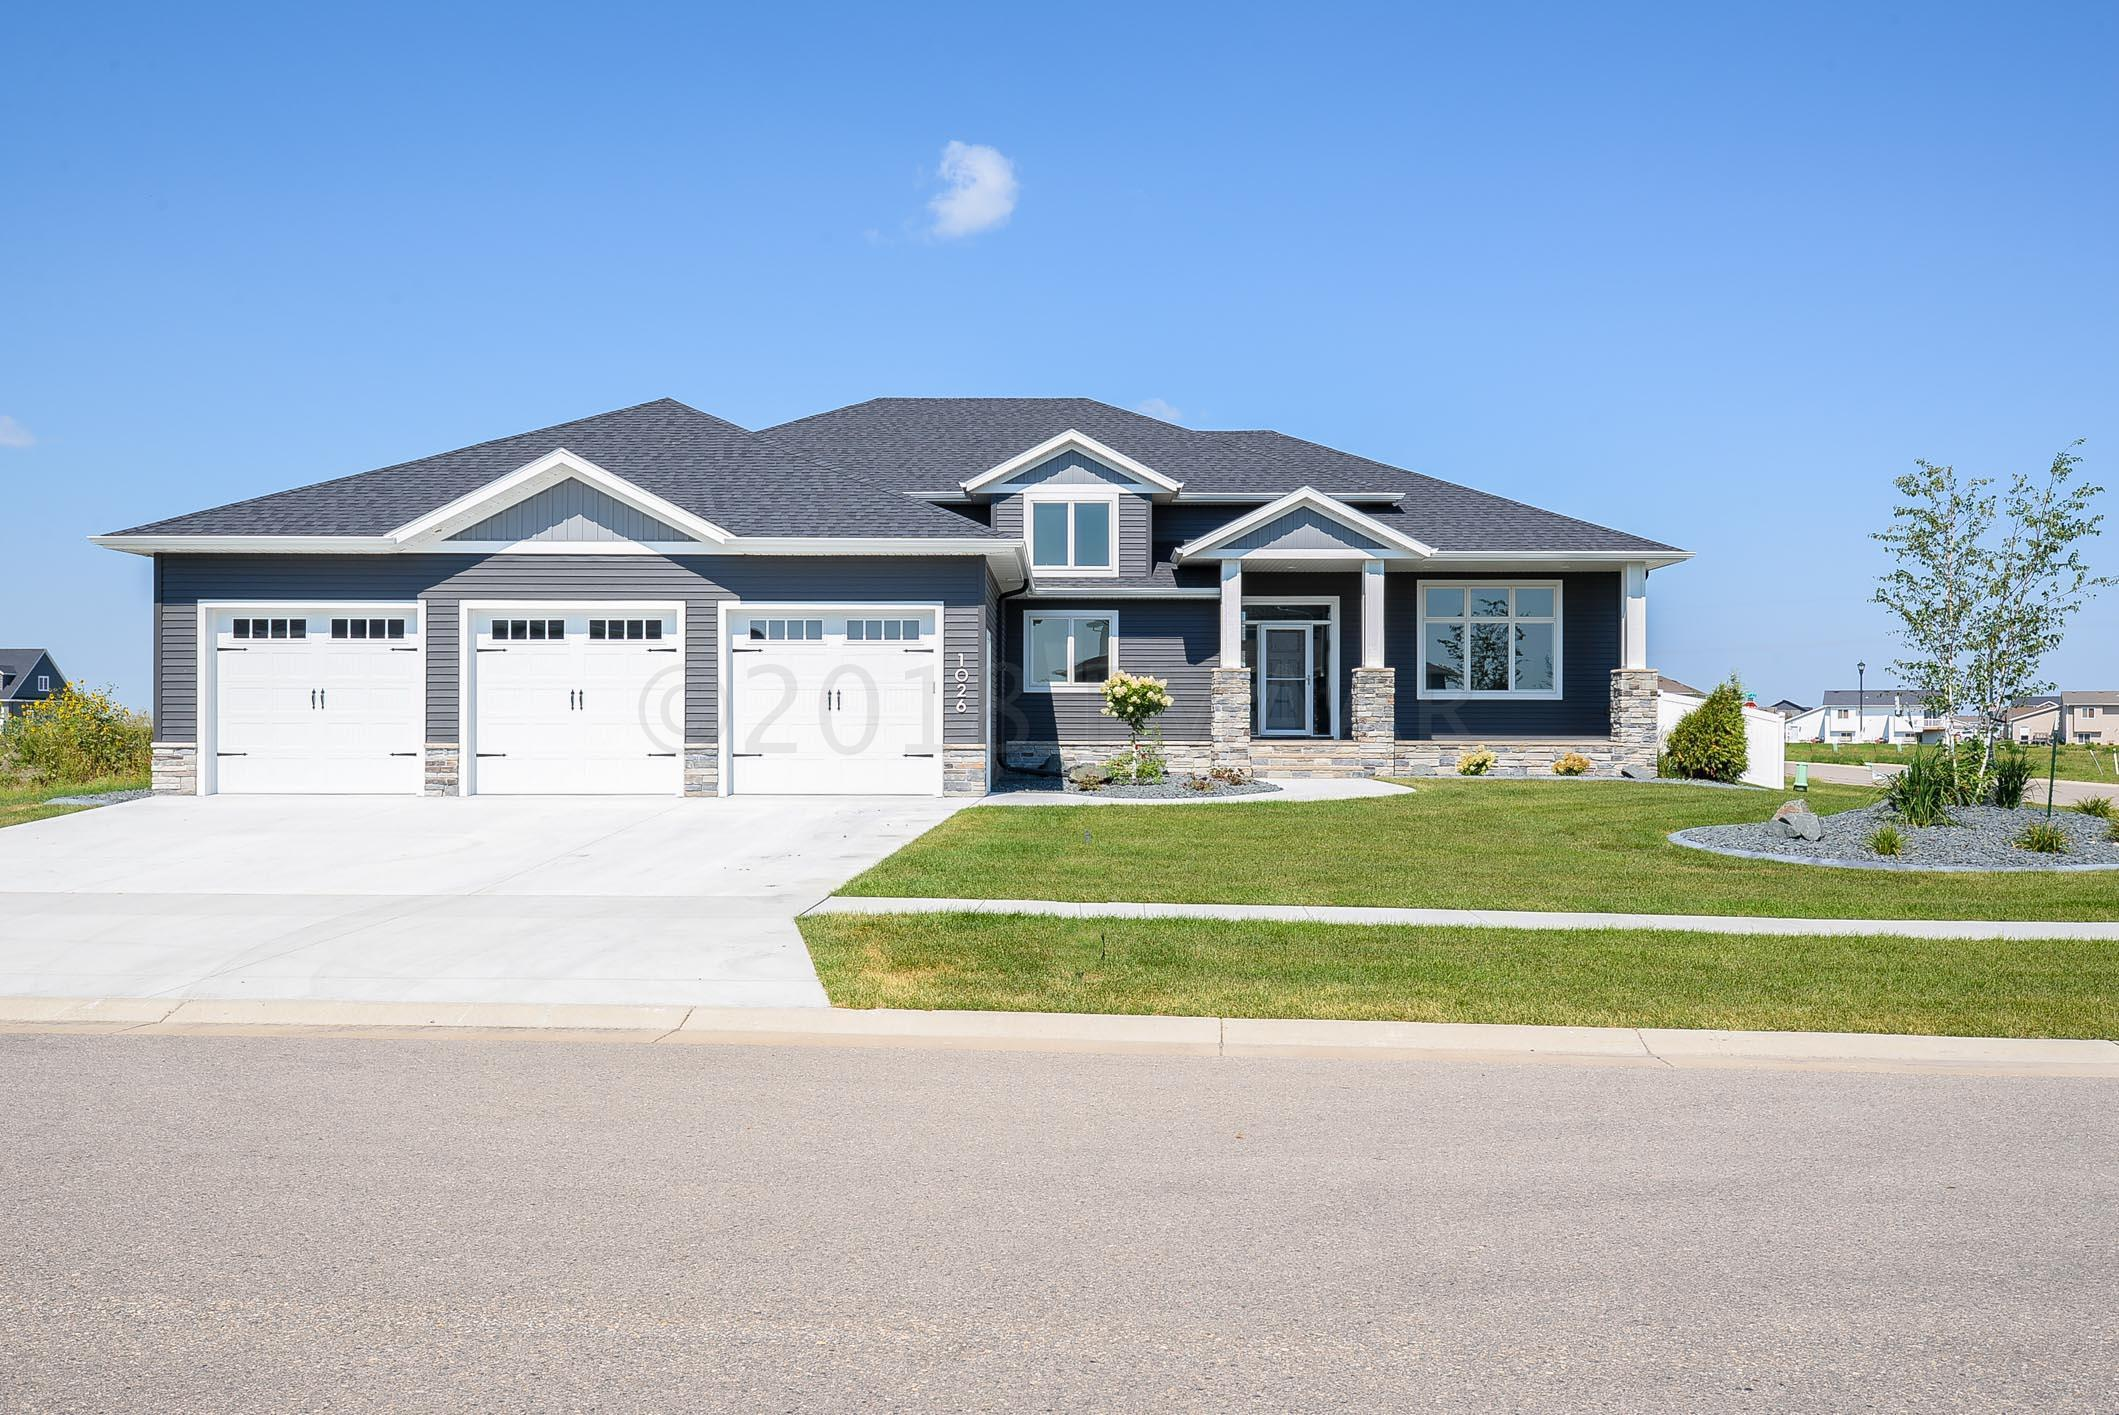 Listing: 1026 Hickory Lane, West Fargo, ND.| MLS# 18-3978 | Results ...